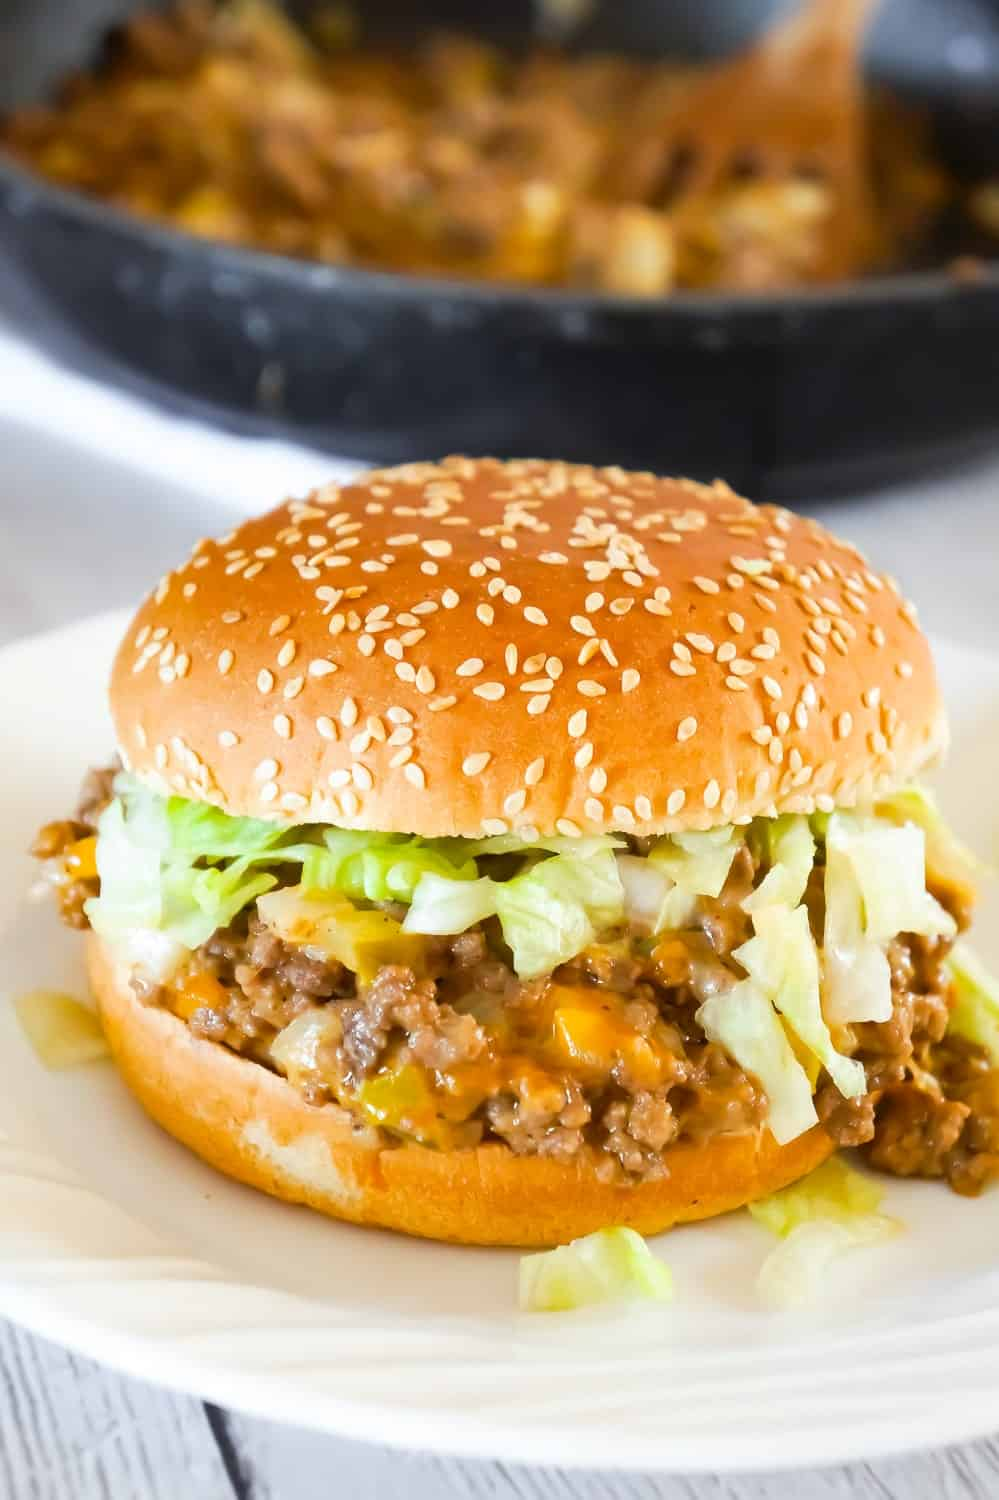 Big Mac Sloppy Joes are an easy ground beef dinner recipe perfect for weeknights. These sloppy joes are loaded with onions, pickles and cheddar cheese all tossed in a copycat Big Mac Sauce.